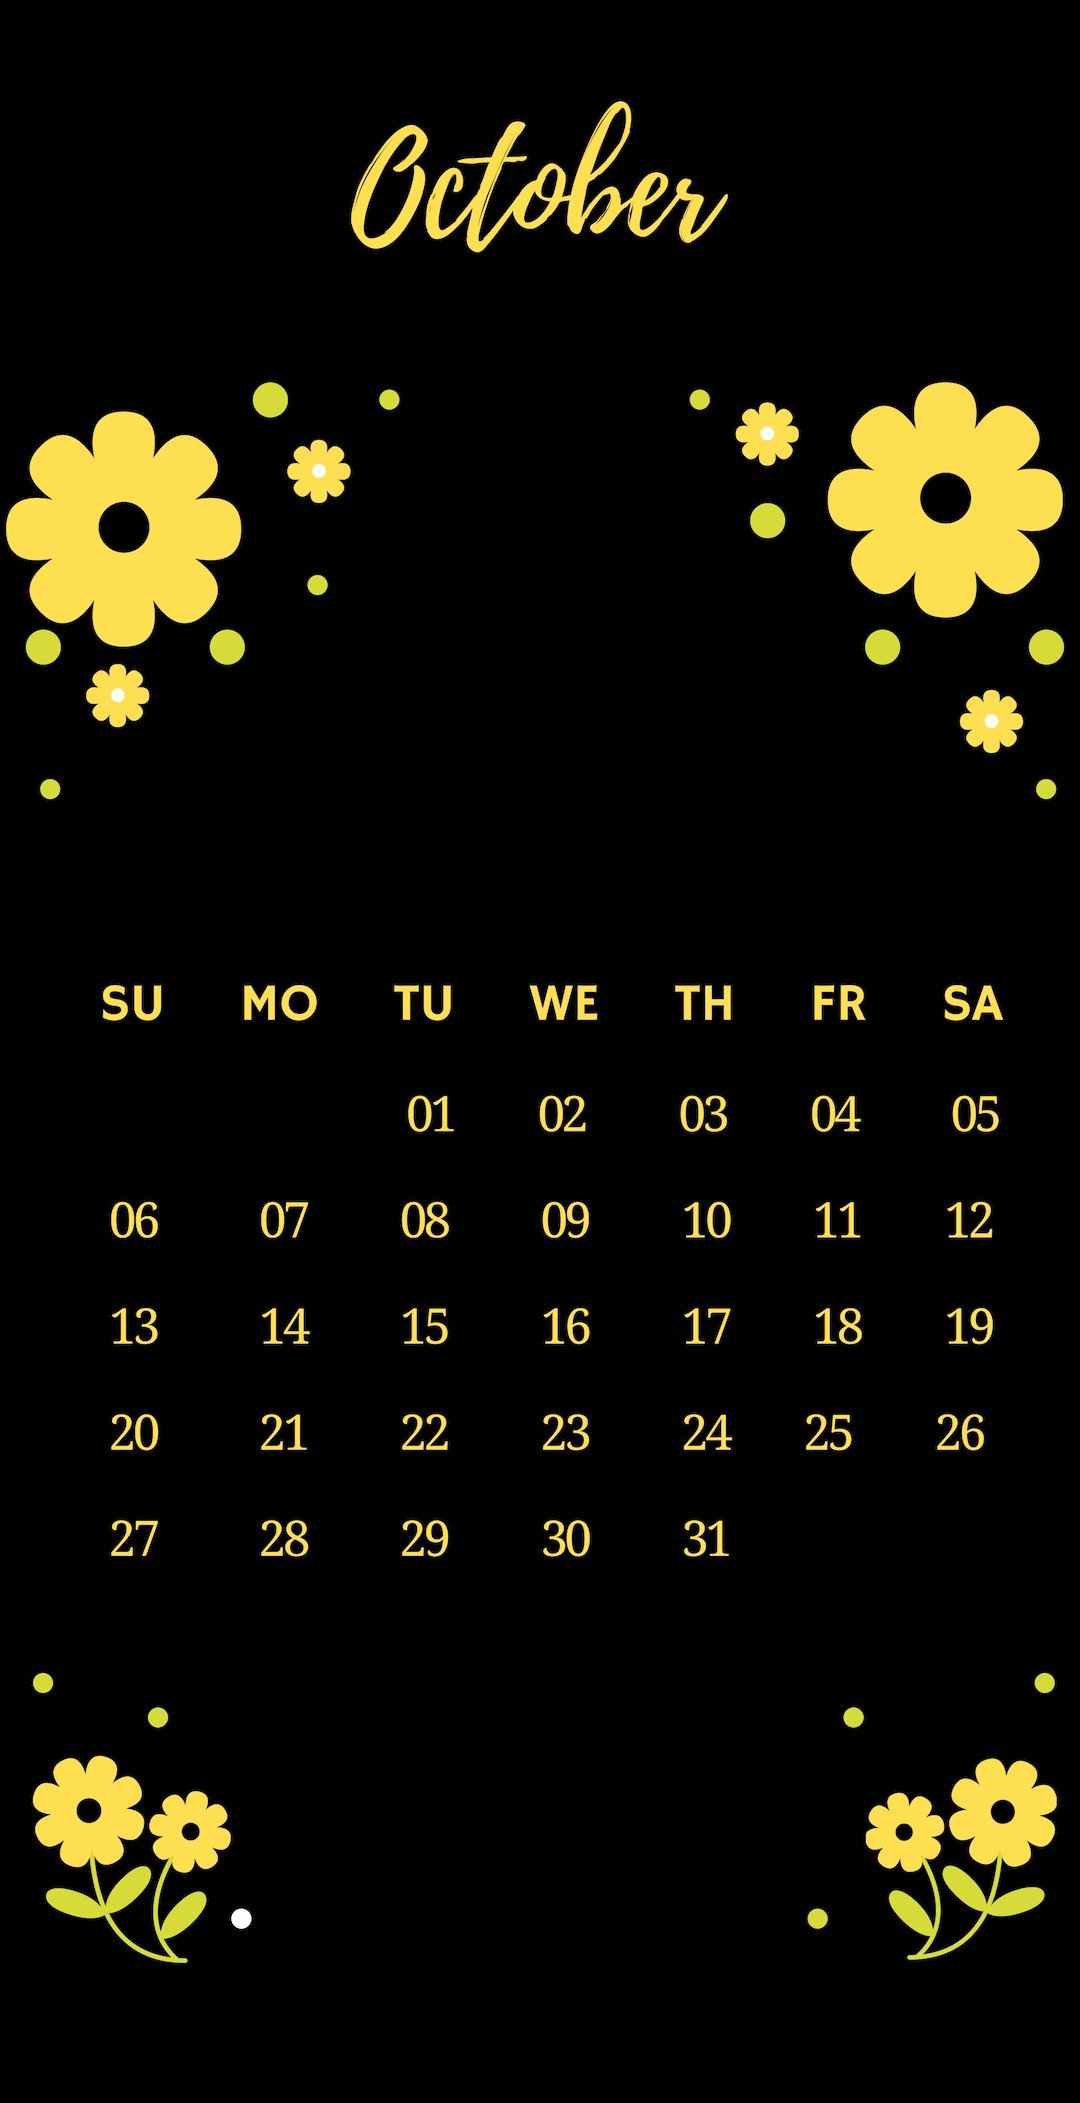 October 2019 iPhone Flower Calendar Wallpaper